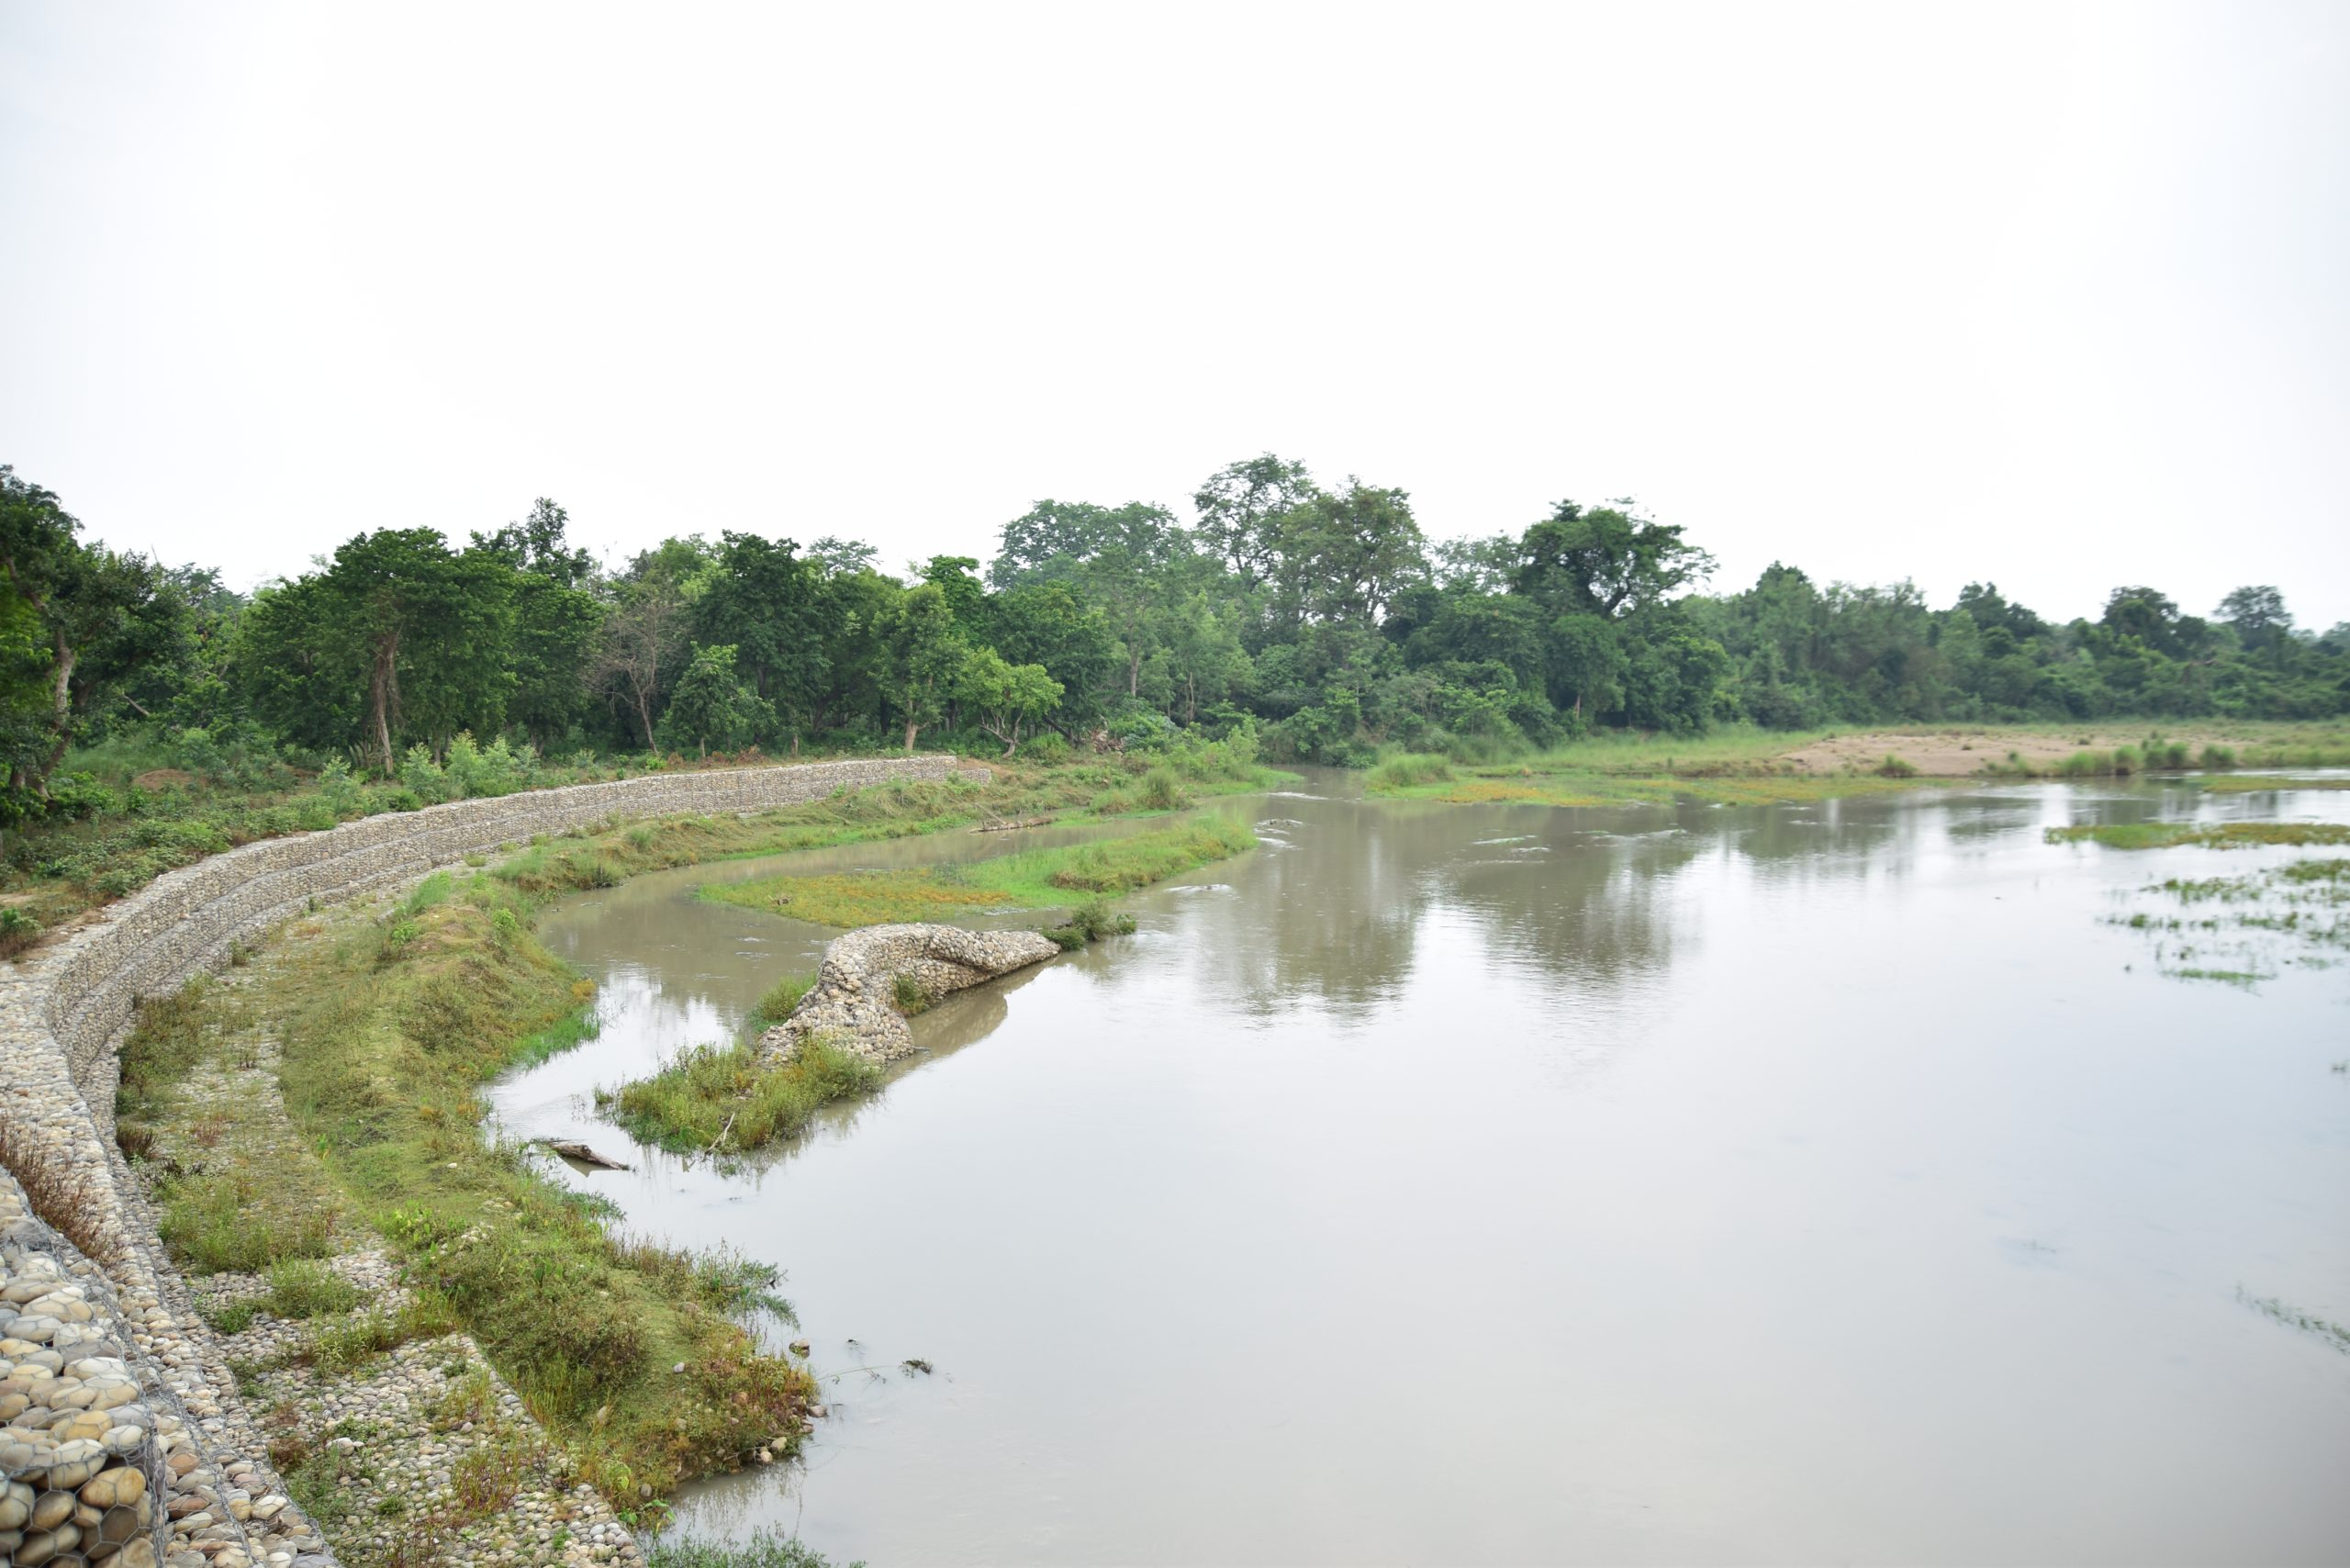 Natural embankments are saving many farmlands from convering to wasteland in flood plains